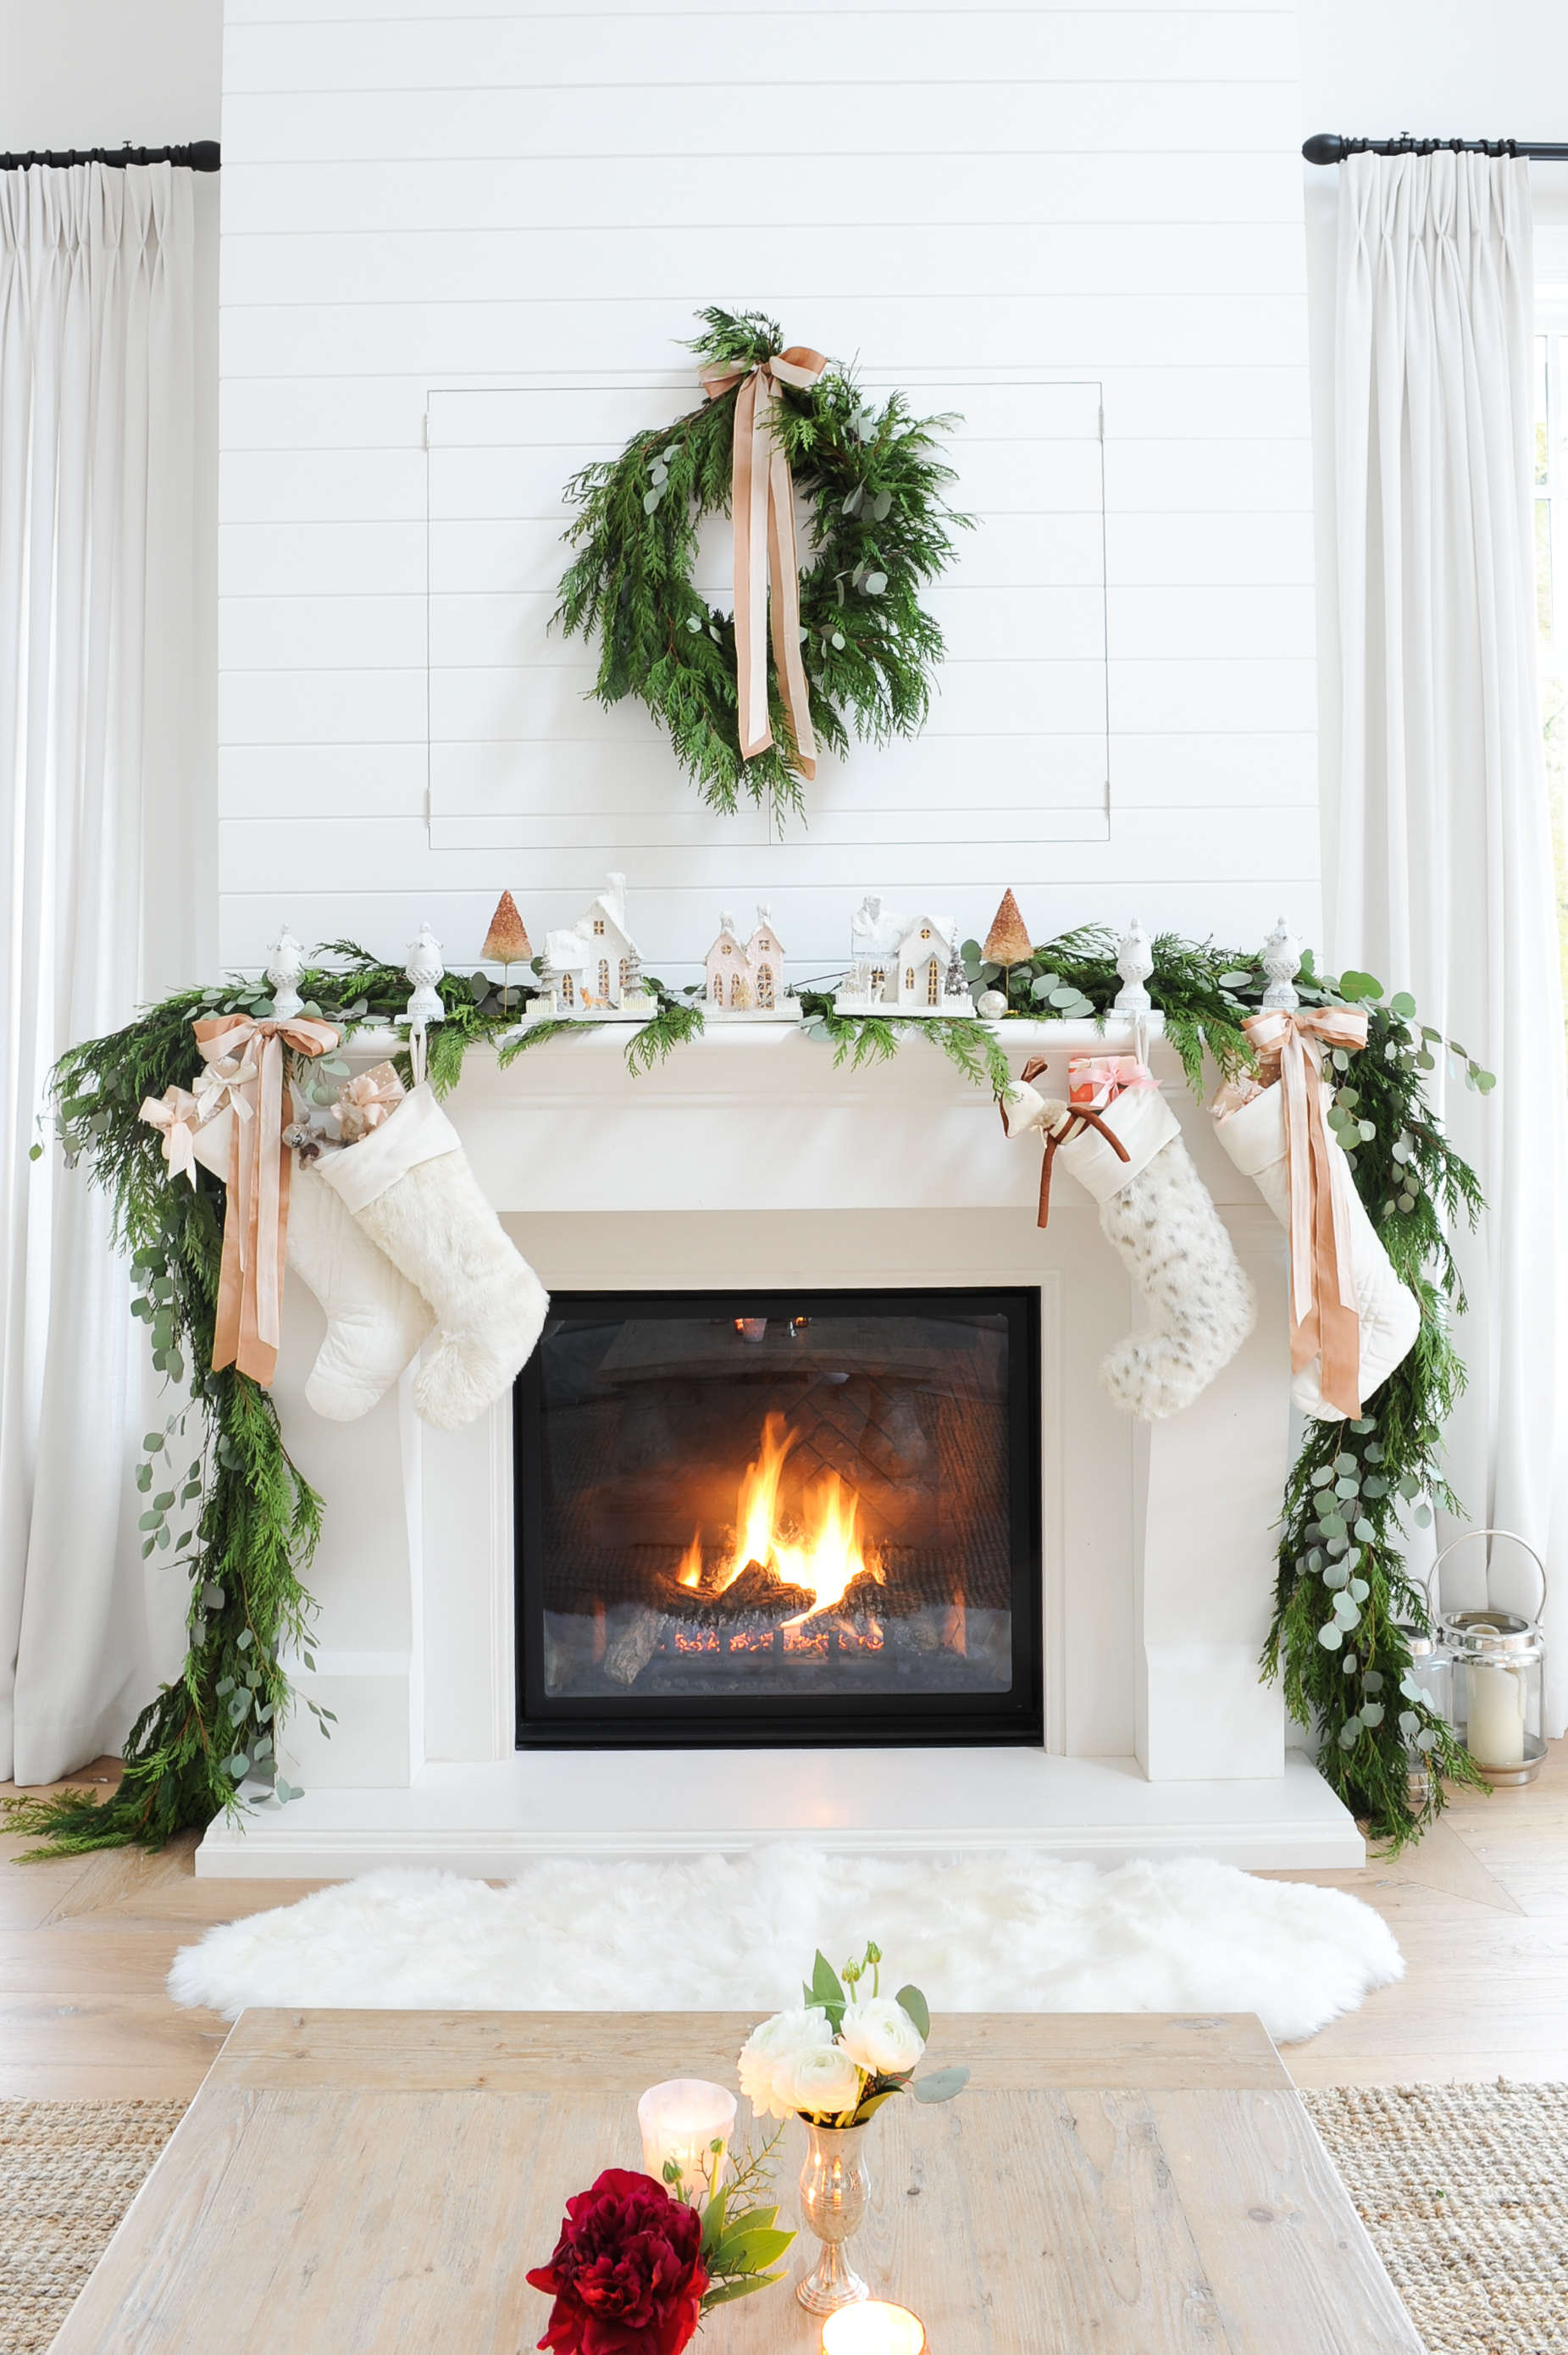 Christmas Mantel Lime Stone with Blazing Fire